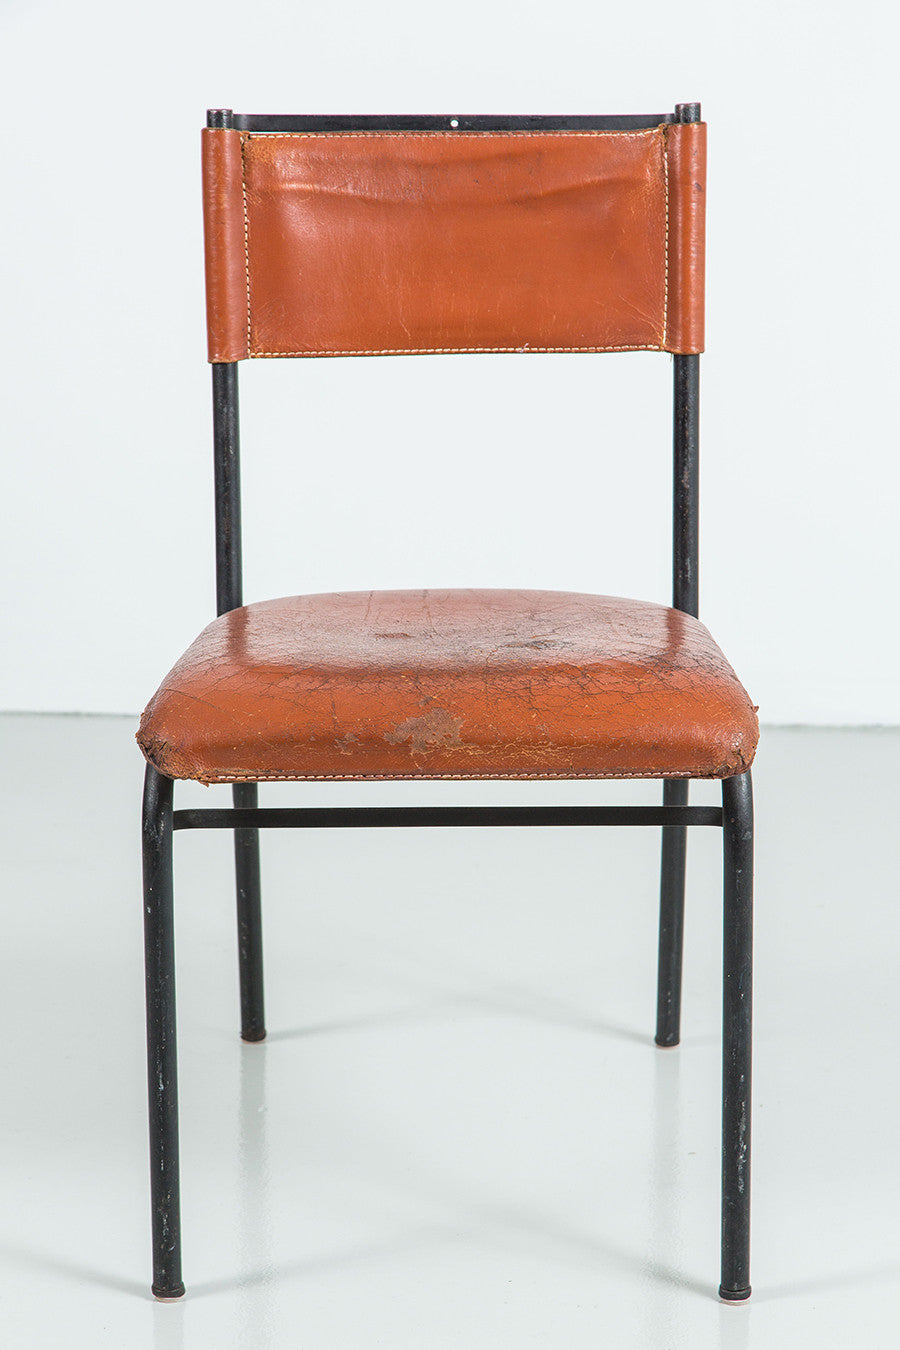 Pair Of Jacques Adnet Leather And Metal Dining Chairs Orange